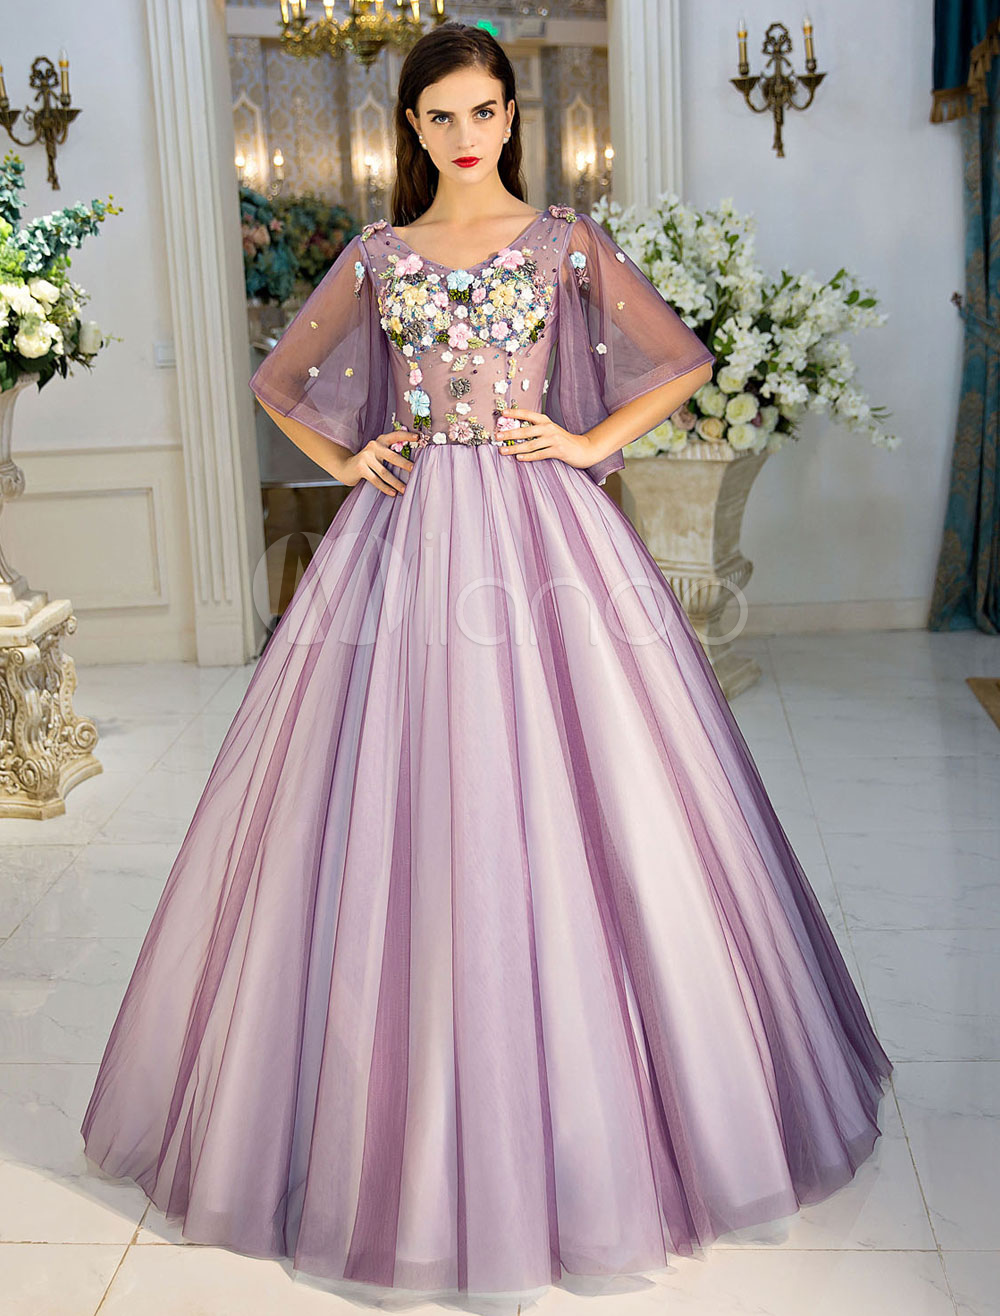 Luxury Quinceanera Dresses Princess Lilac Flowers V Neck Illusion Butterfly Sleeve Tulle Floor Length Women's Pageant Dress